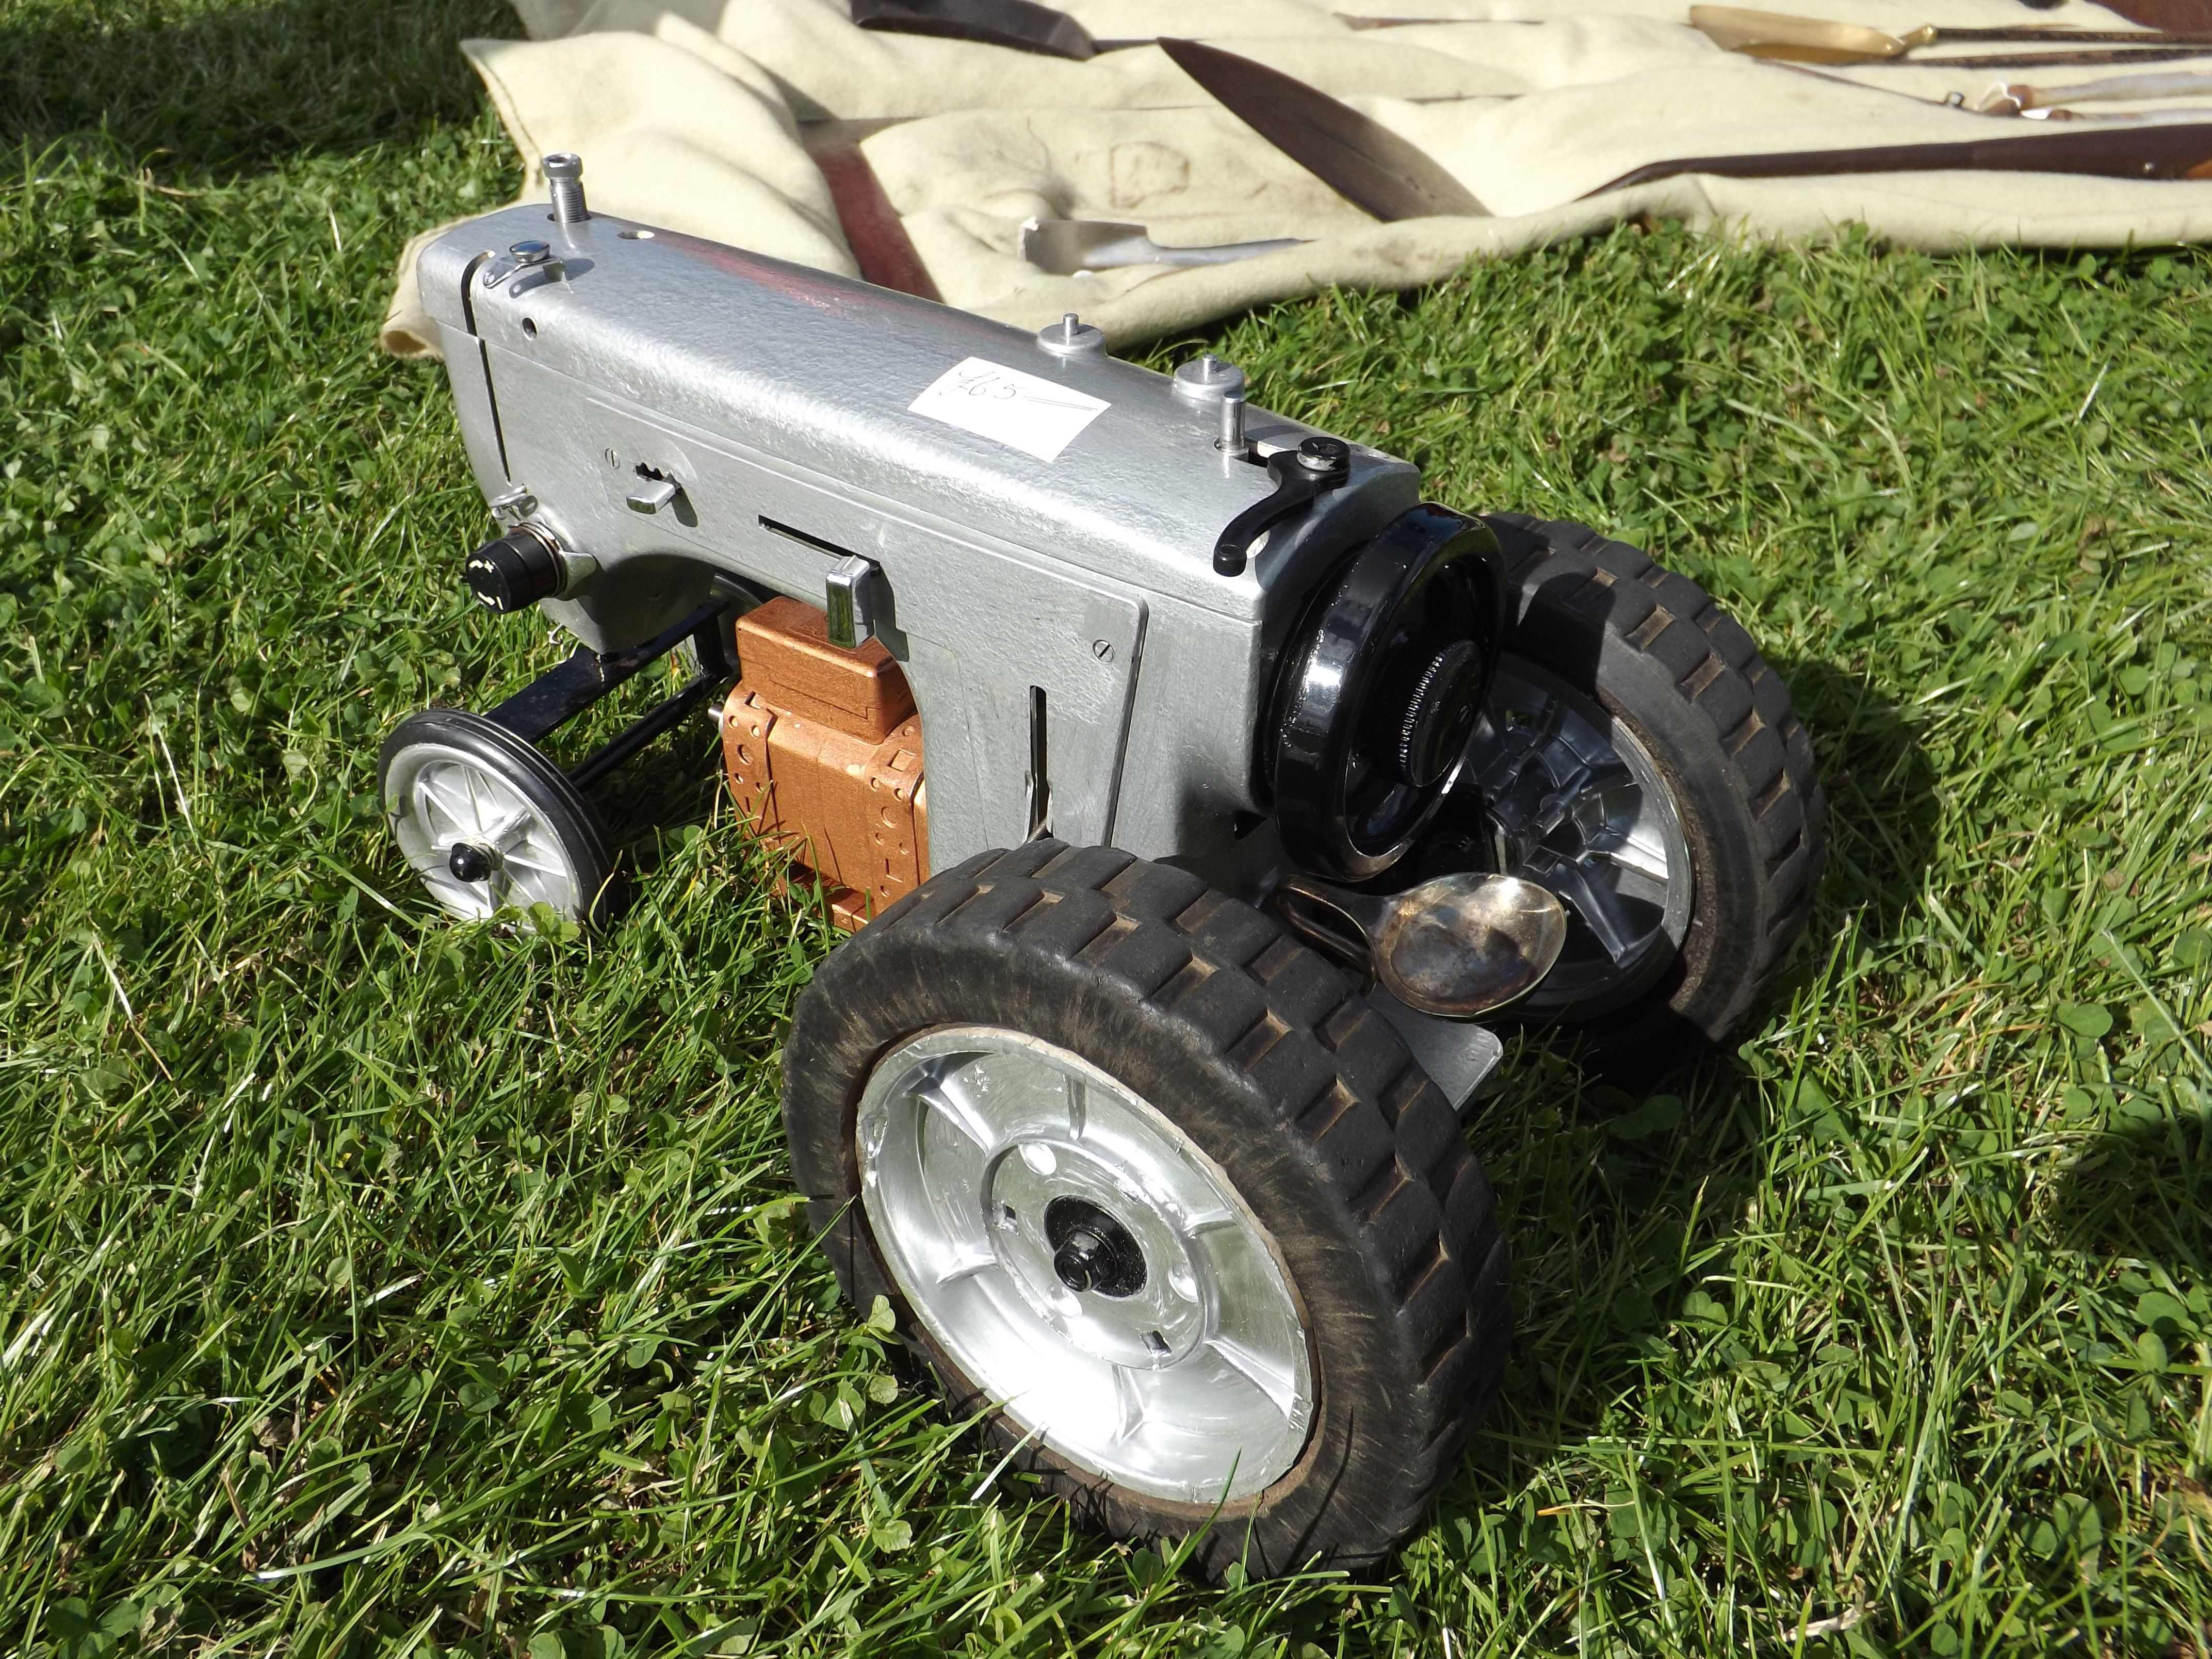 Spotted At Blue Anchor Bay Car Boot Sale Somerset UK. Old Sewing Machine Tractor With Steering